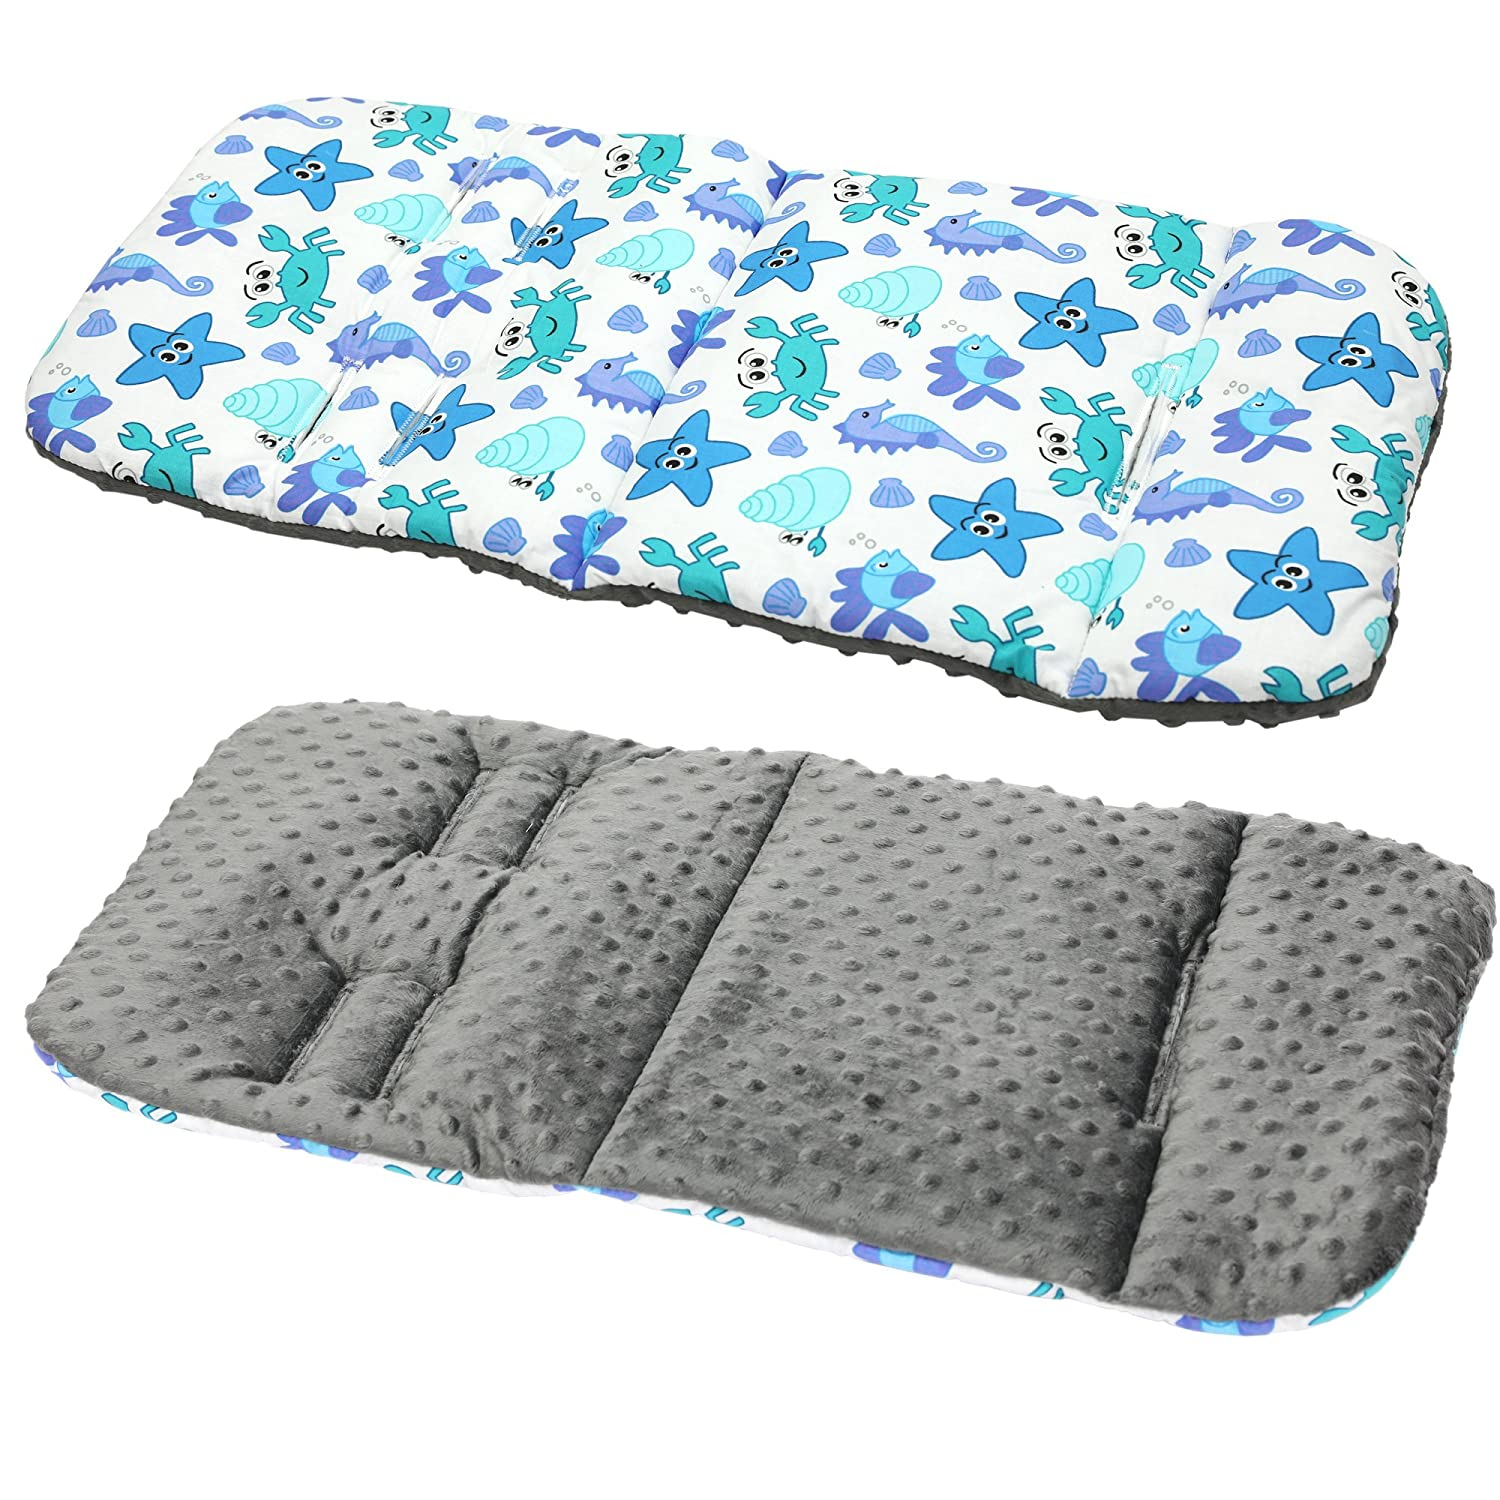 Universal Cover Pushchair Size 32x80 cm Infant Cushion Pad Crocodile,Grey Soft /& Reversible Baby Pure Cotton Stroller Car Seat Liner Pram Insert Portable Changing Pad